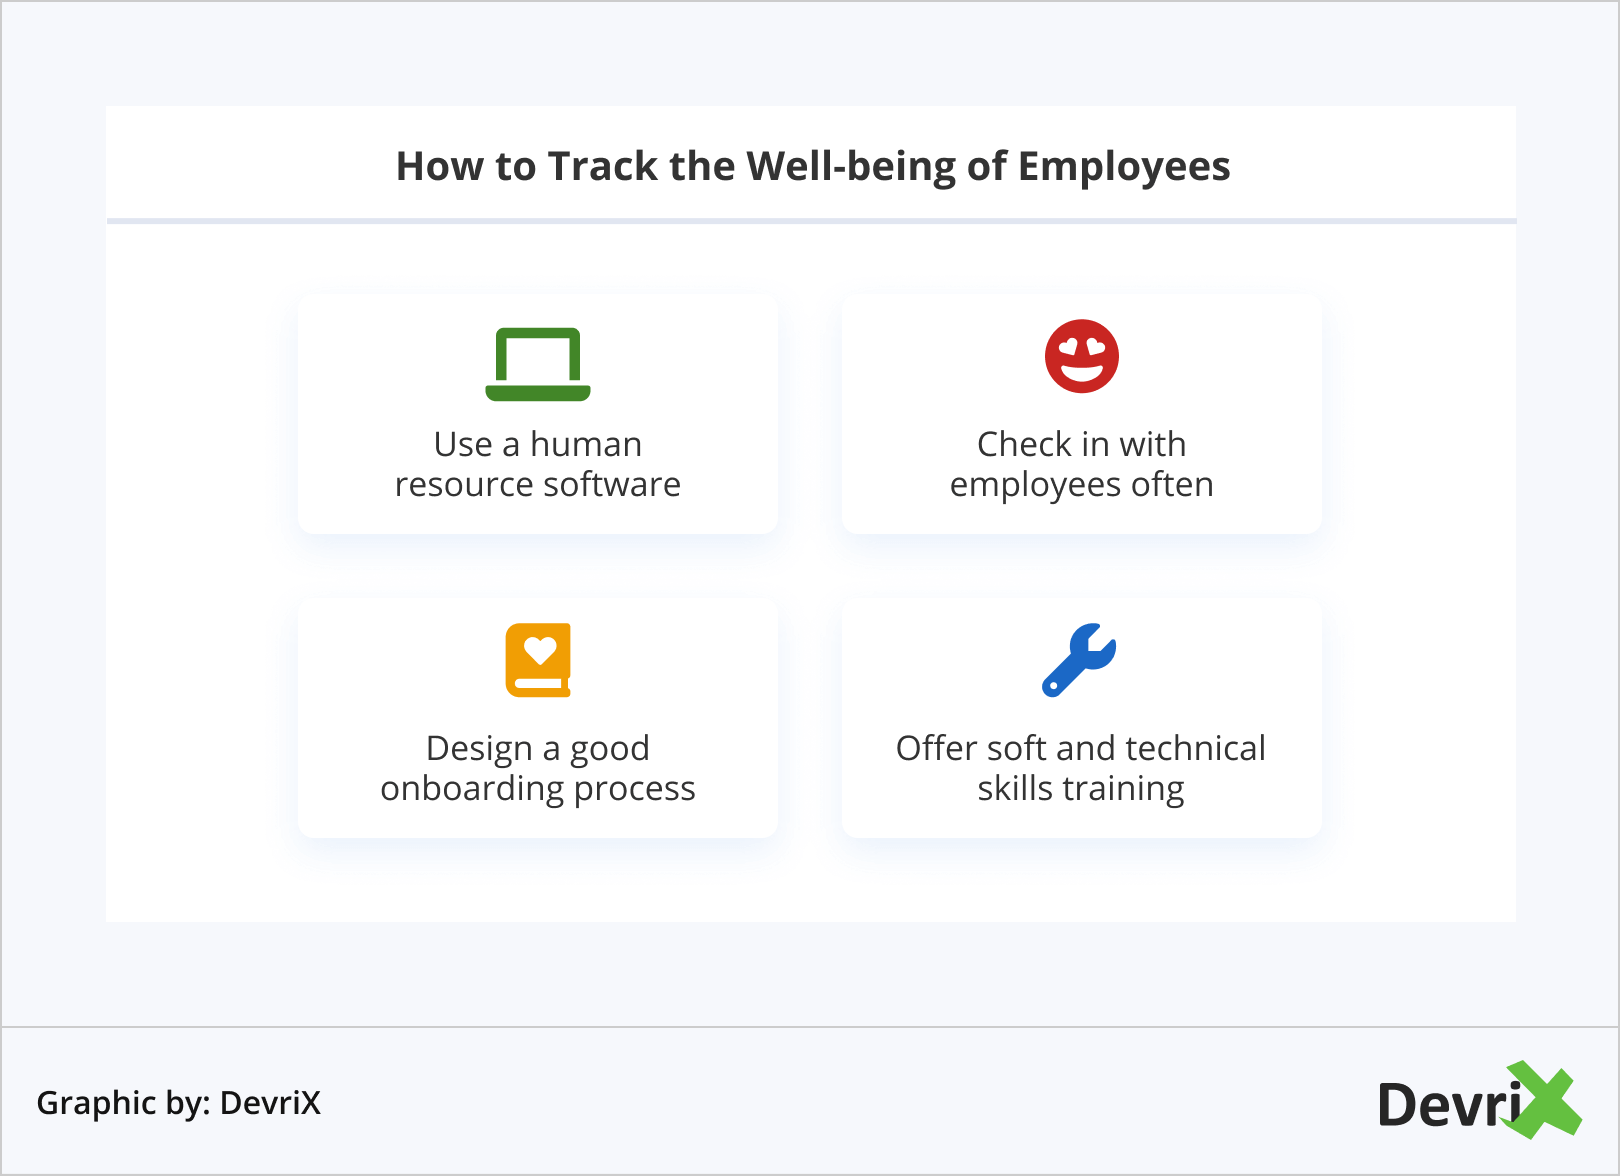 How to Track the Well-being of Employees